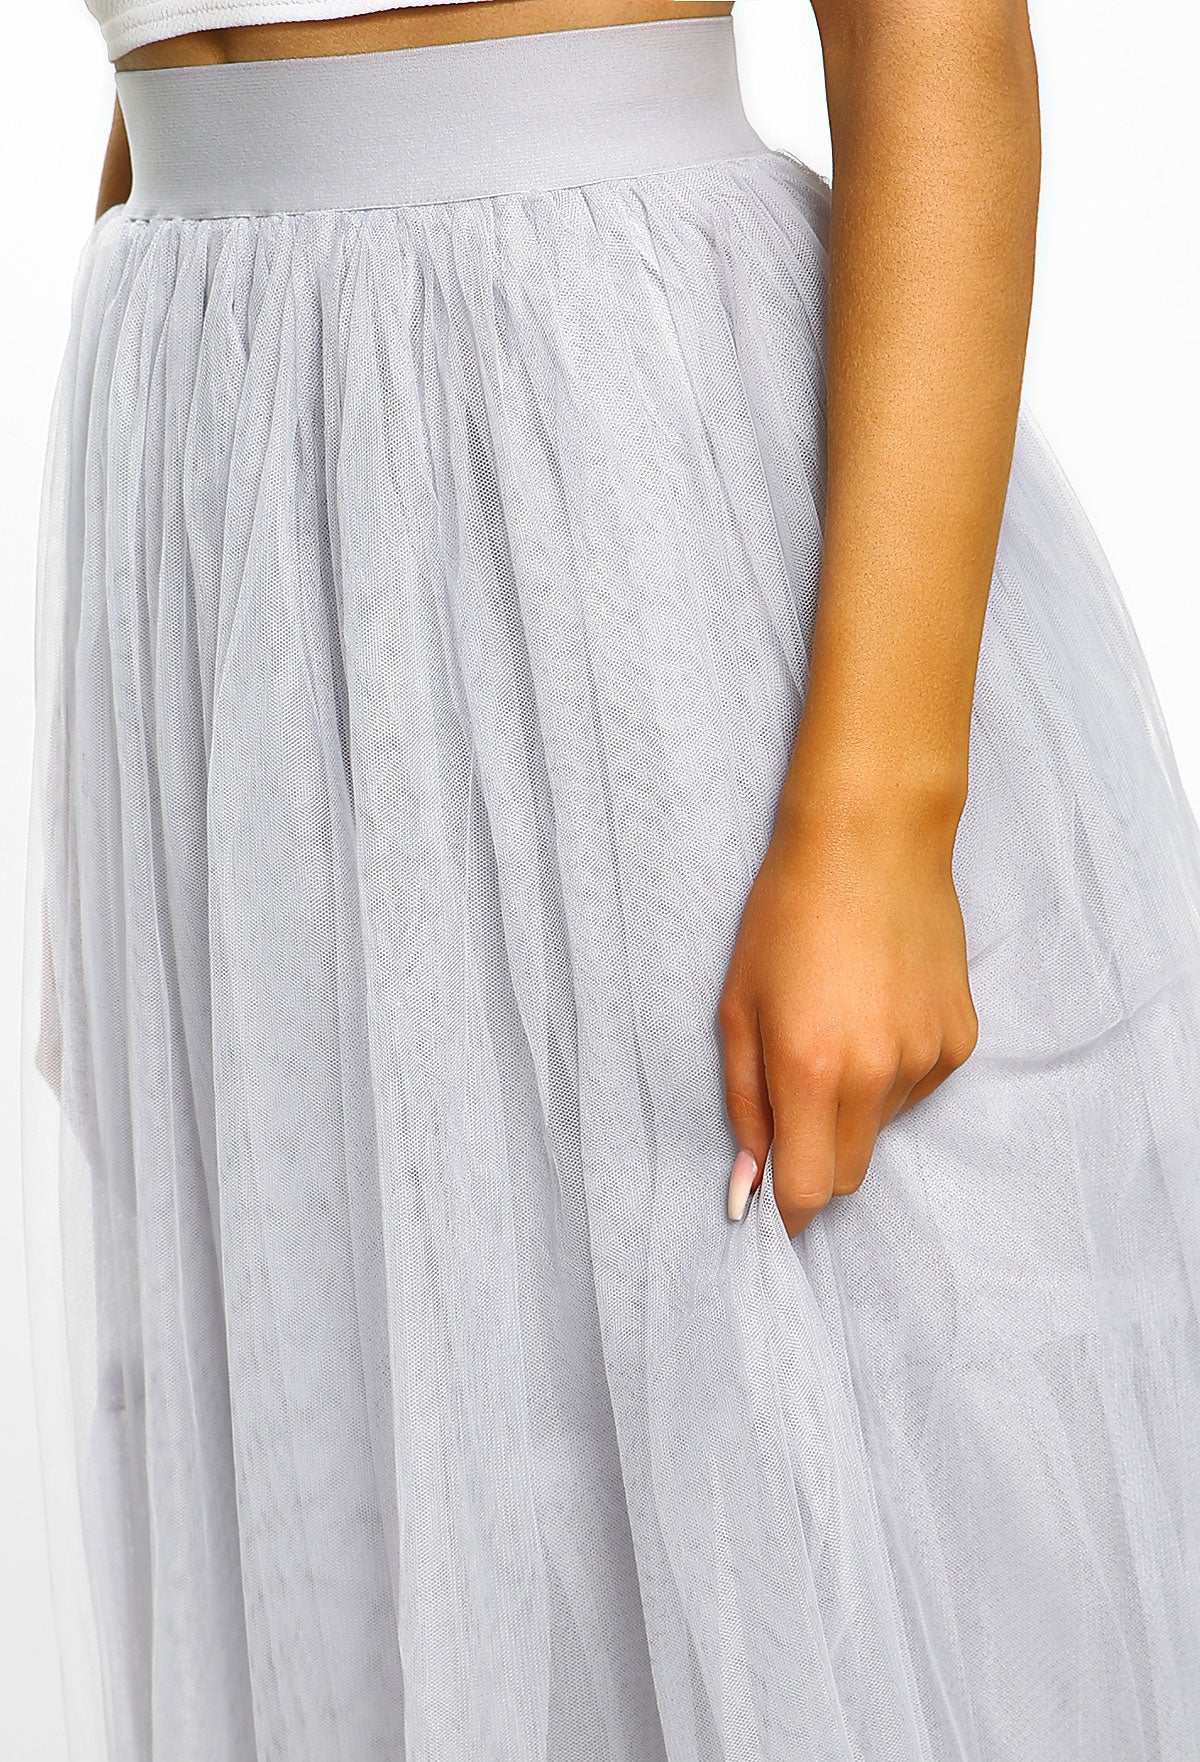 f85d326b8241 Kittie Grey Tulle Midi Skirt – Pink Boutique UK